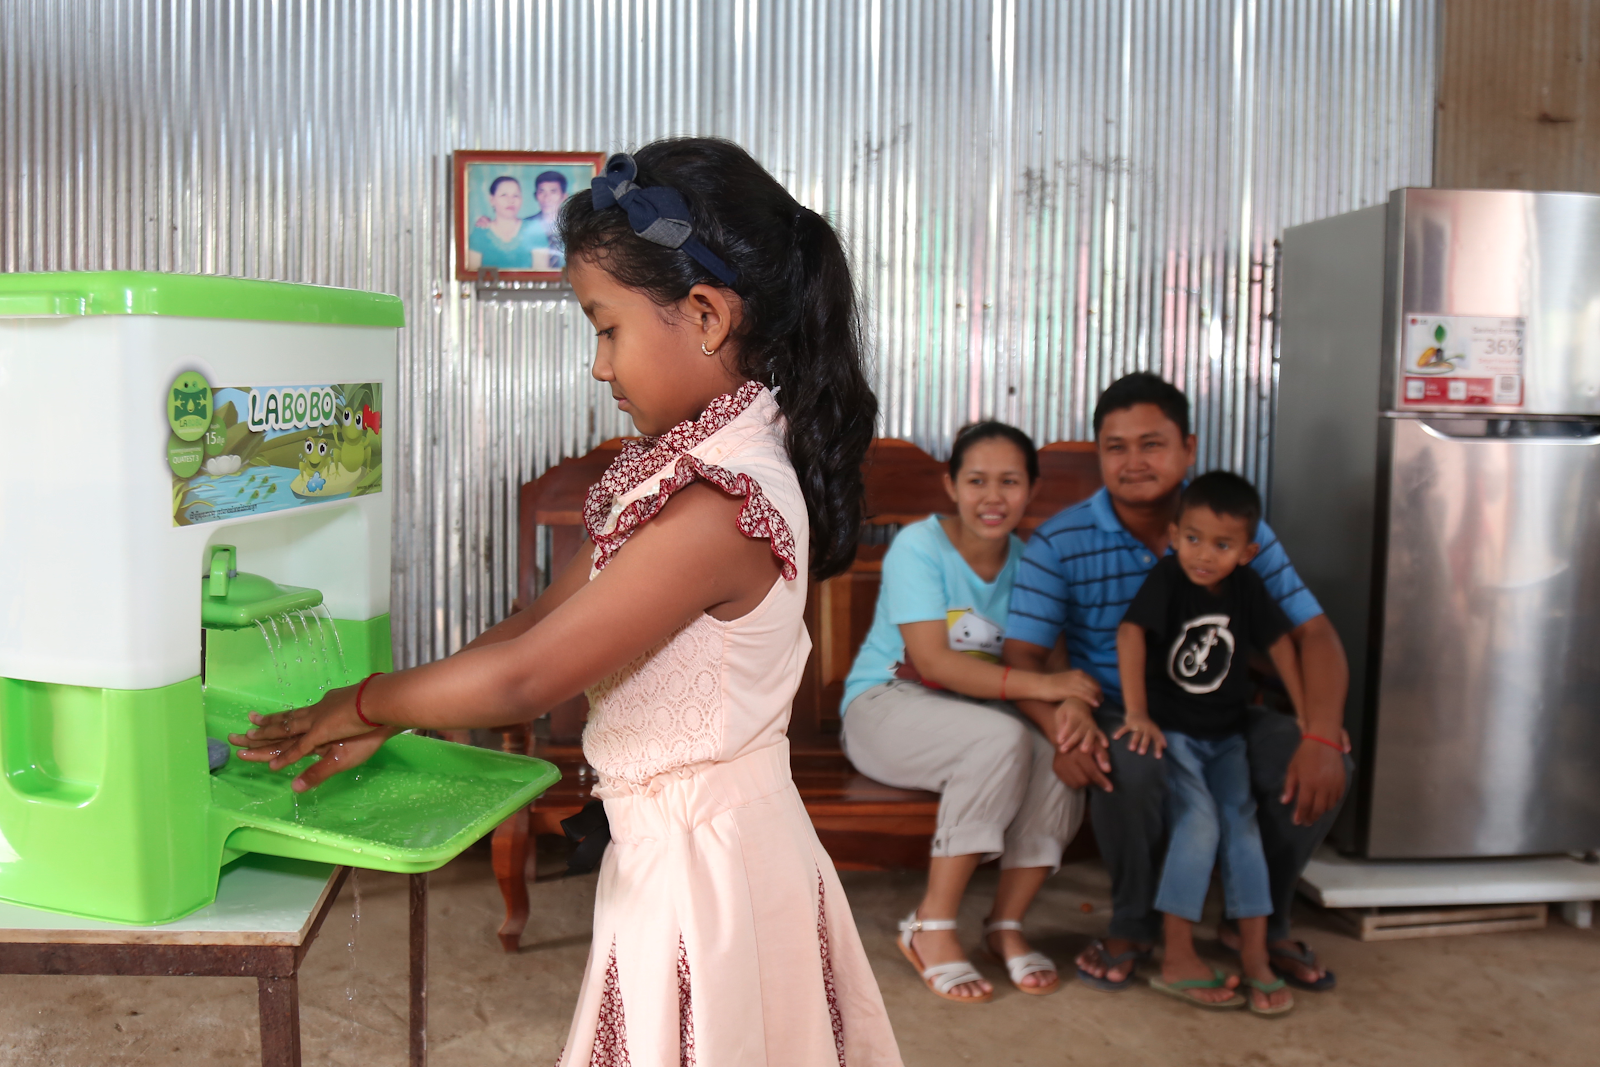 Portable sink promoting hygiene among Cambodia children